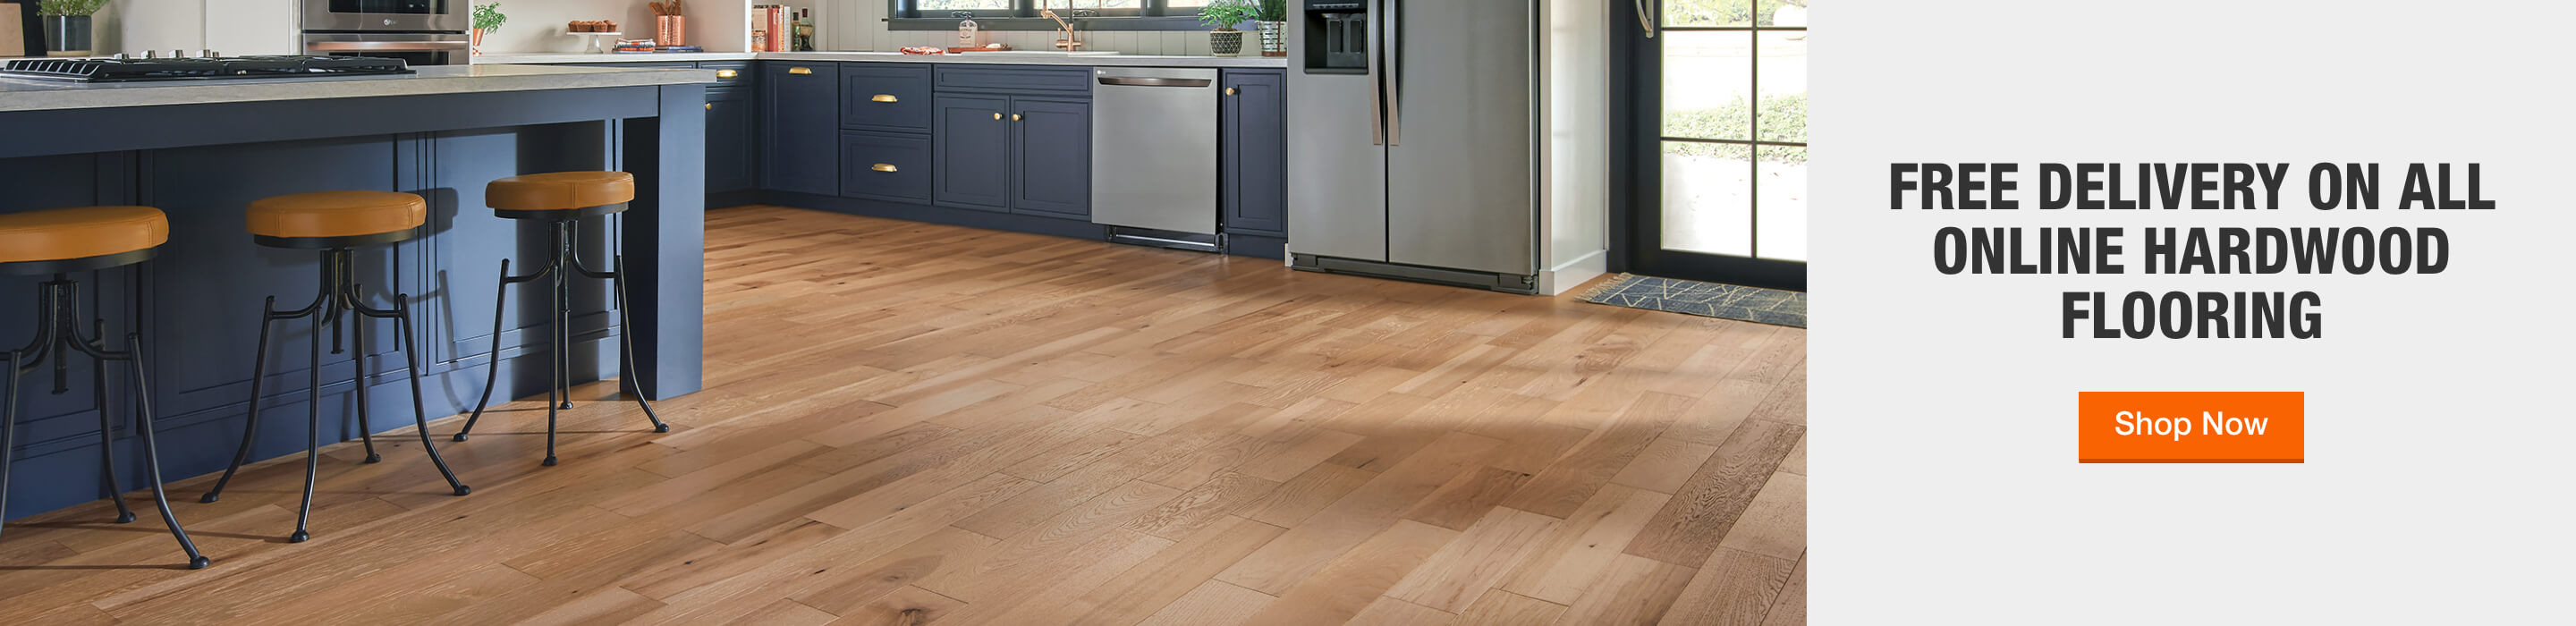 Free Delivery on All Online Hardwood Flooring